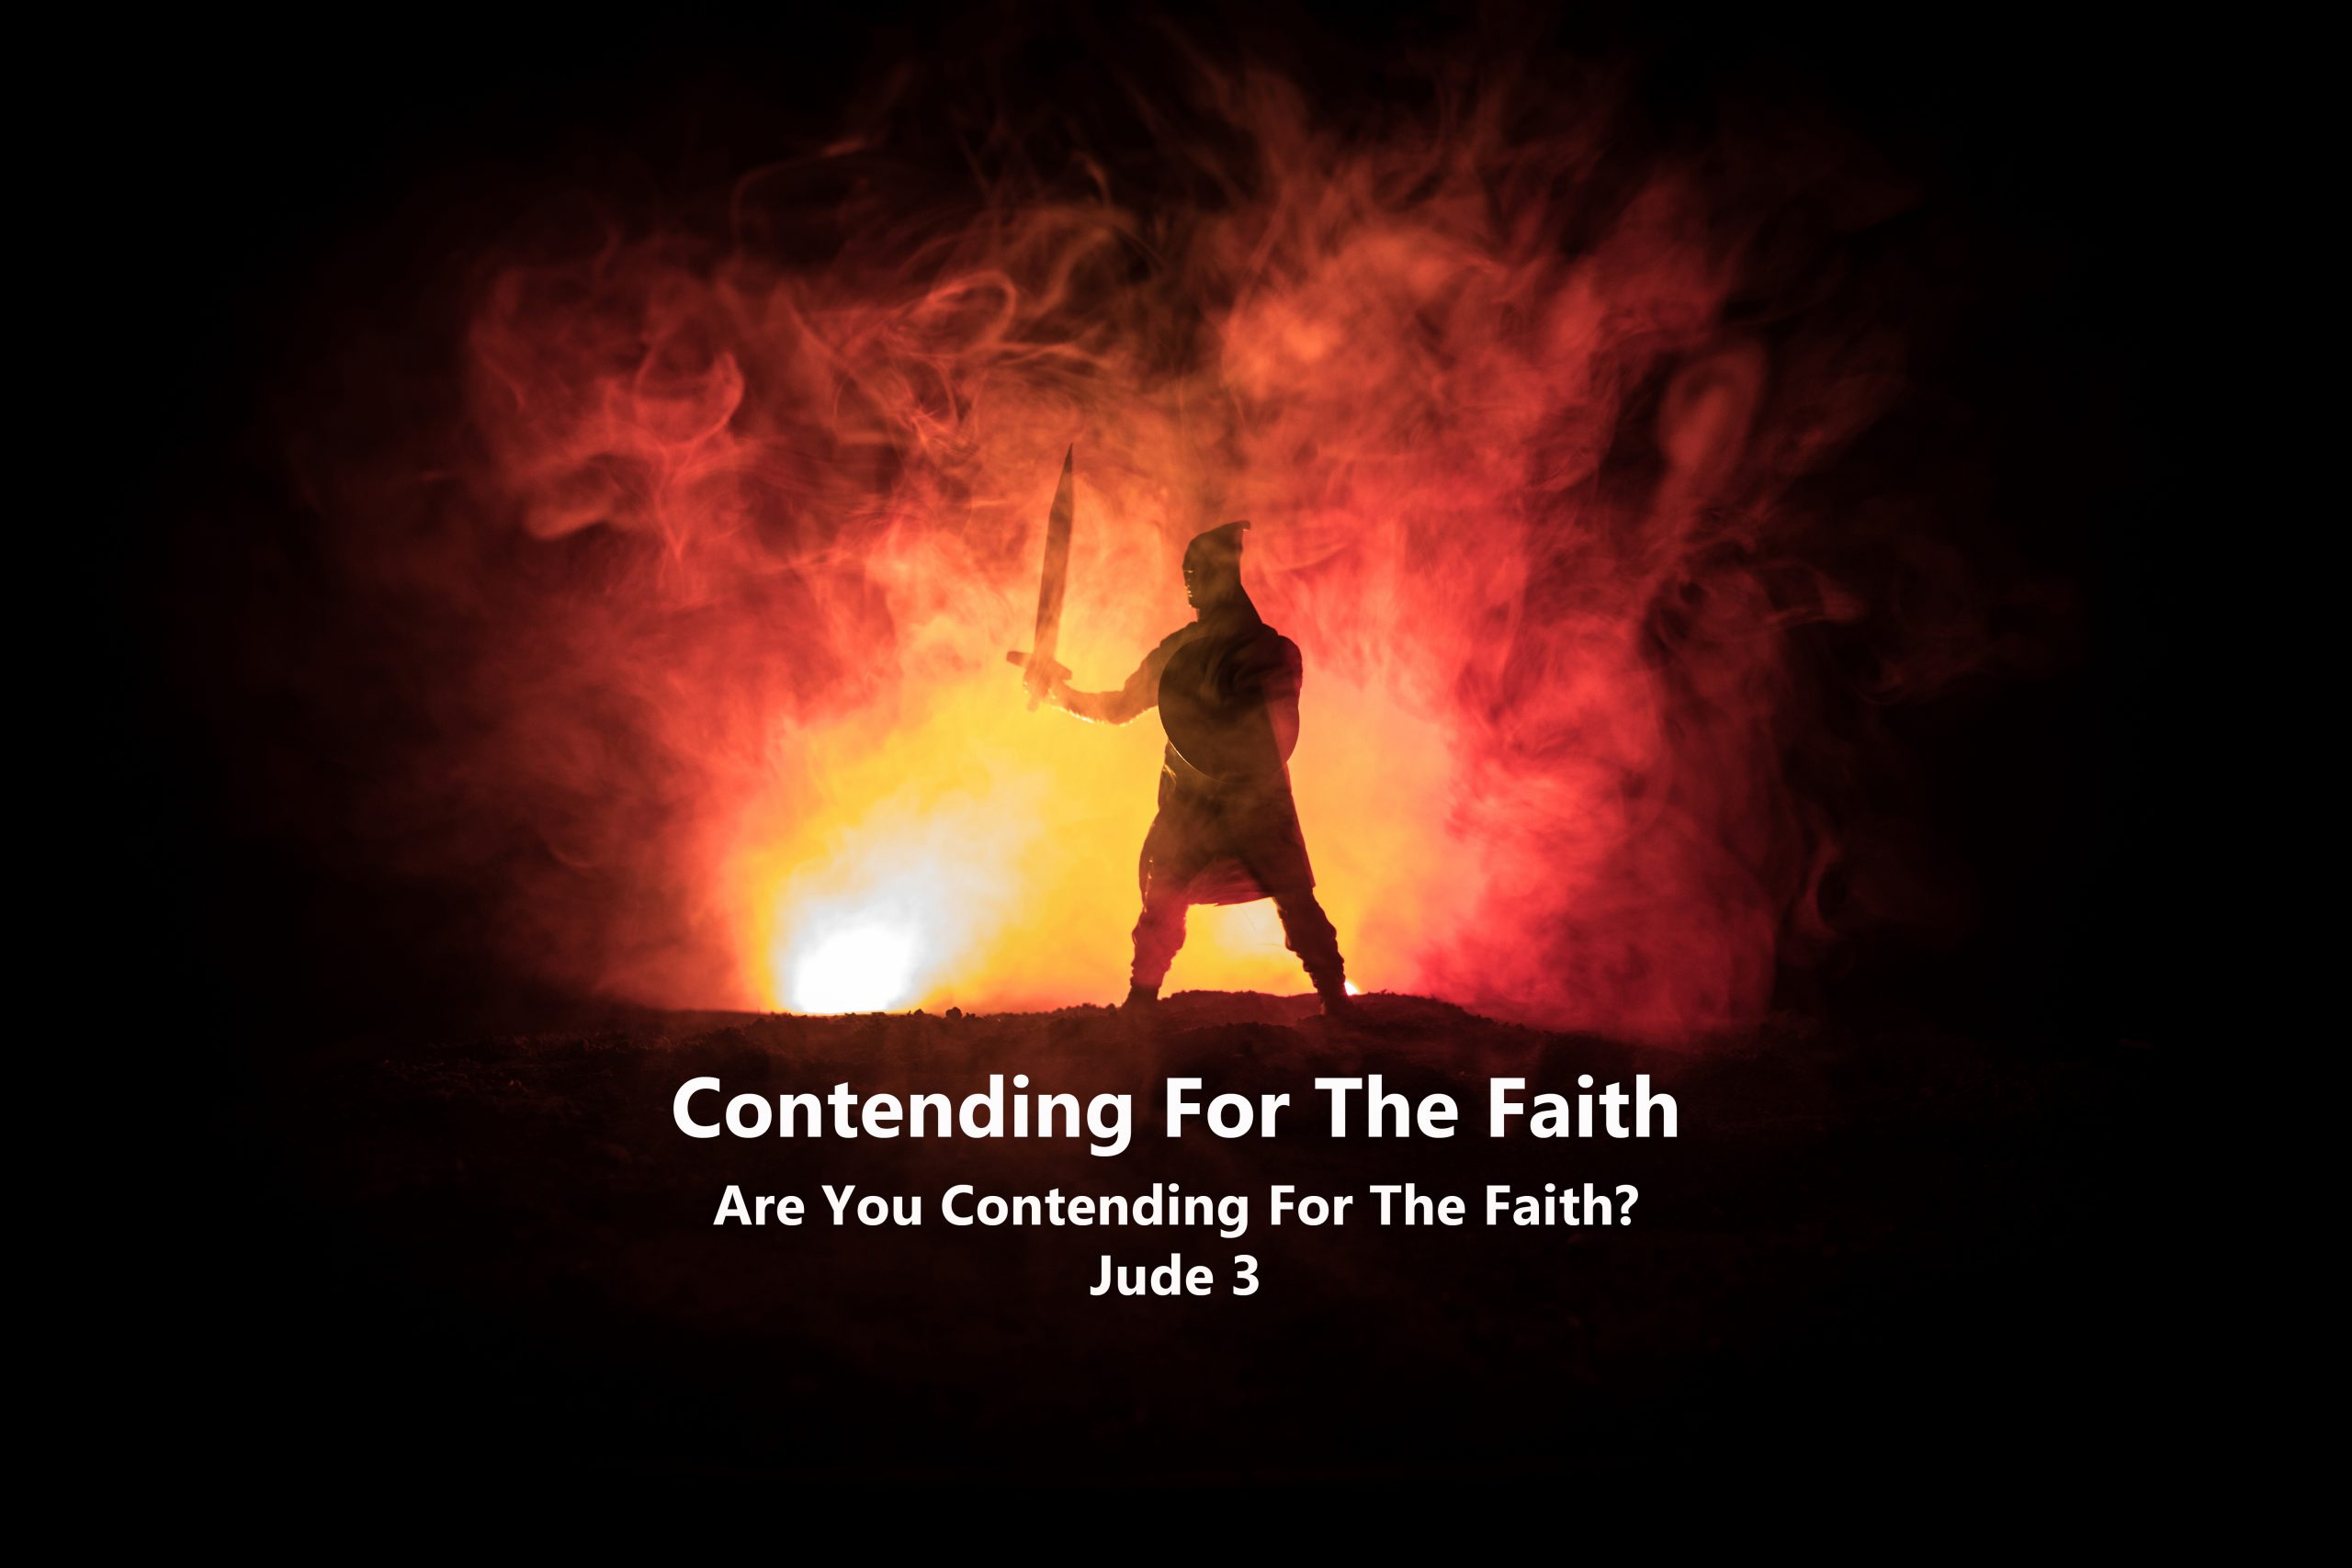 Jude v 3 Are You Contending For The Faith?